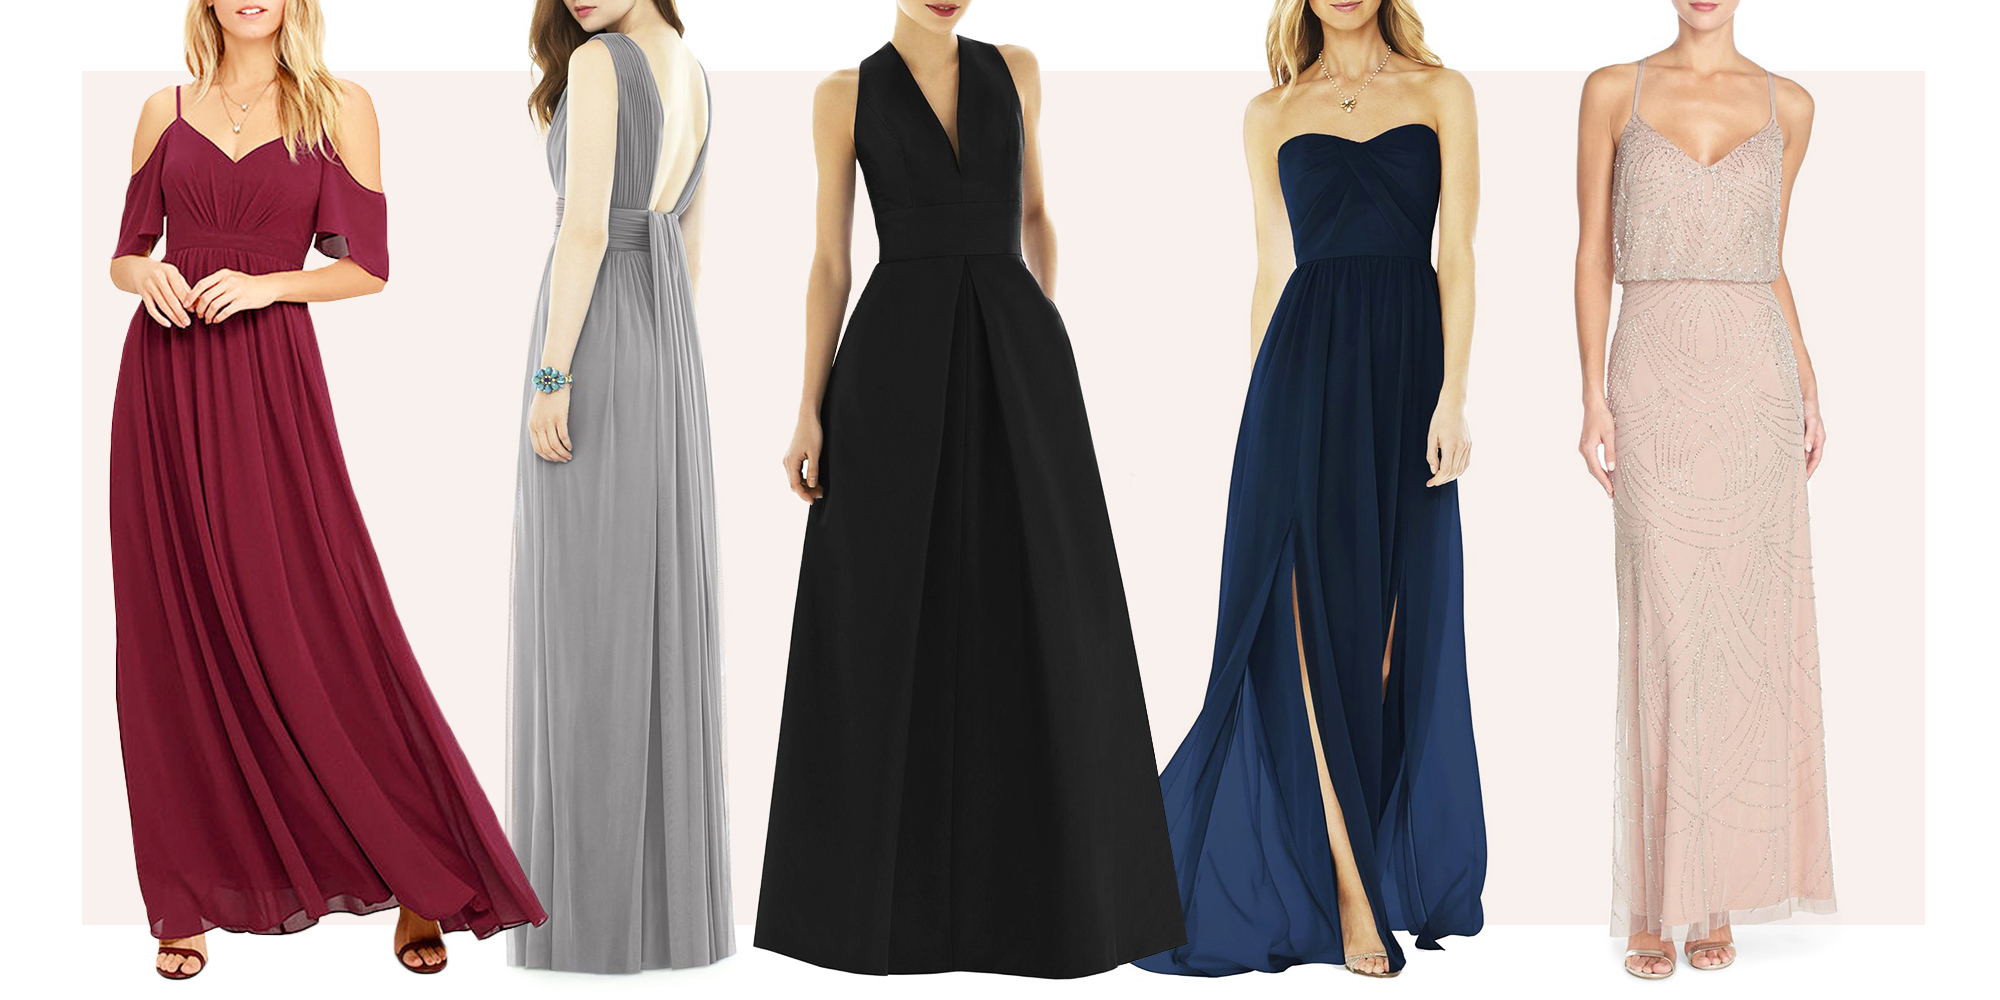 15 Best Bridesmaids Dresses for 2018